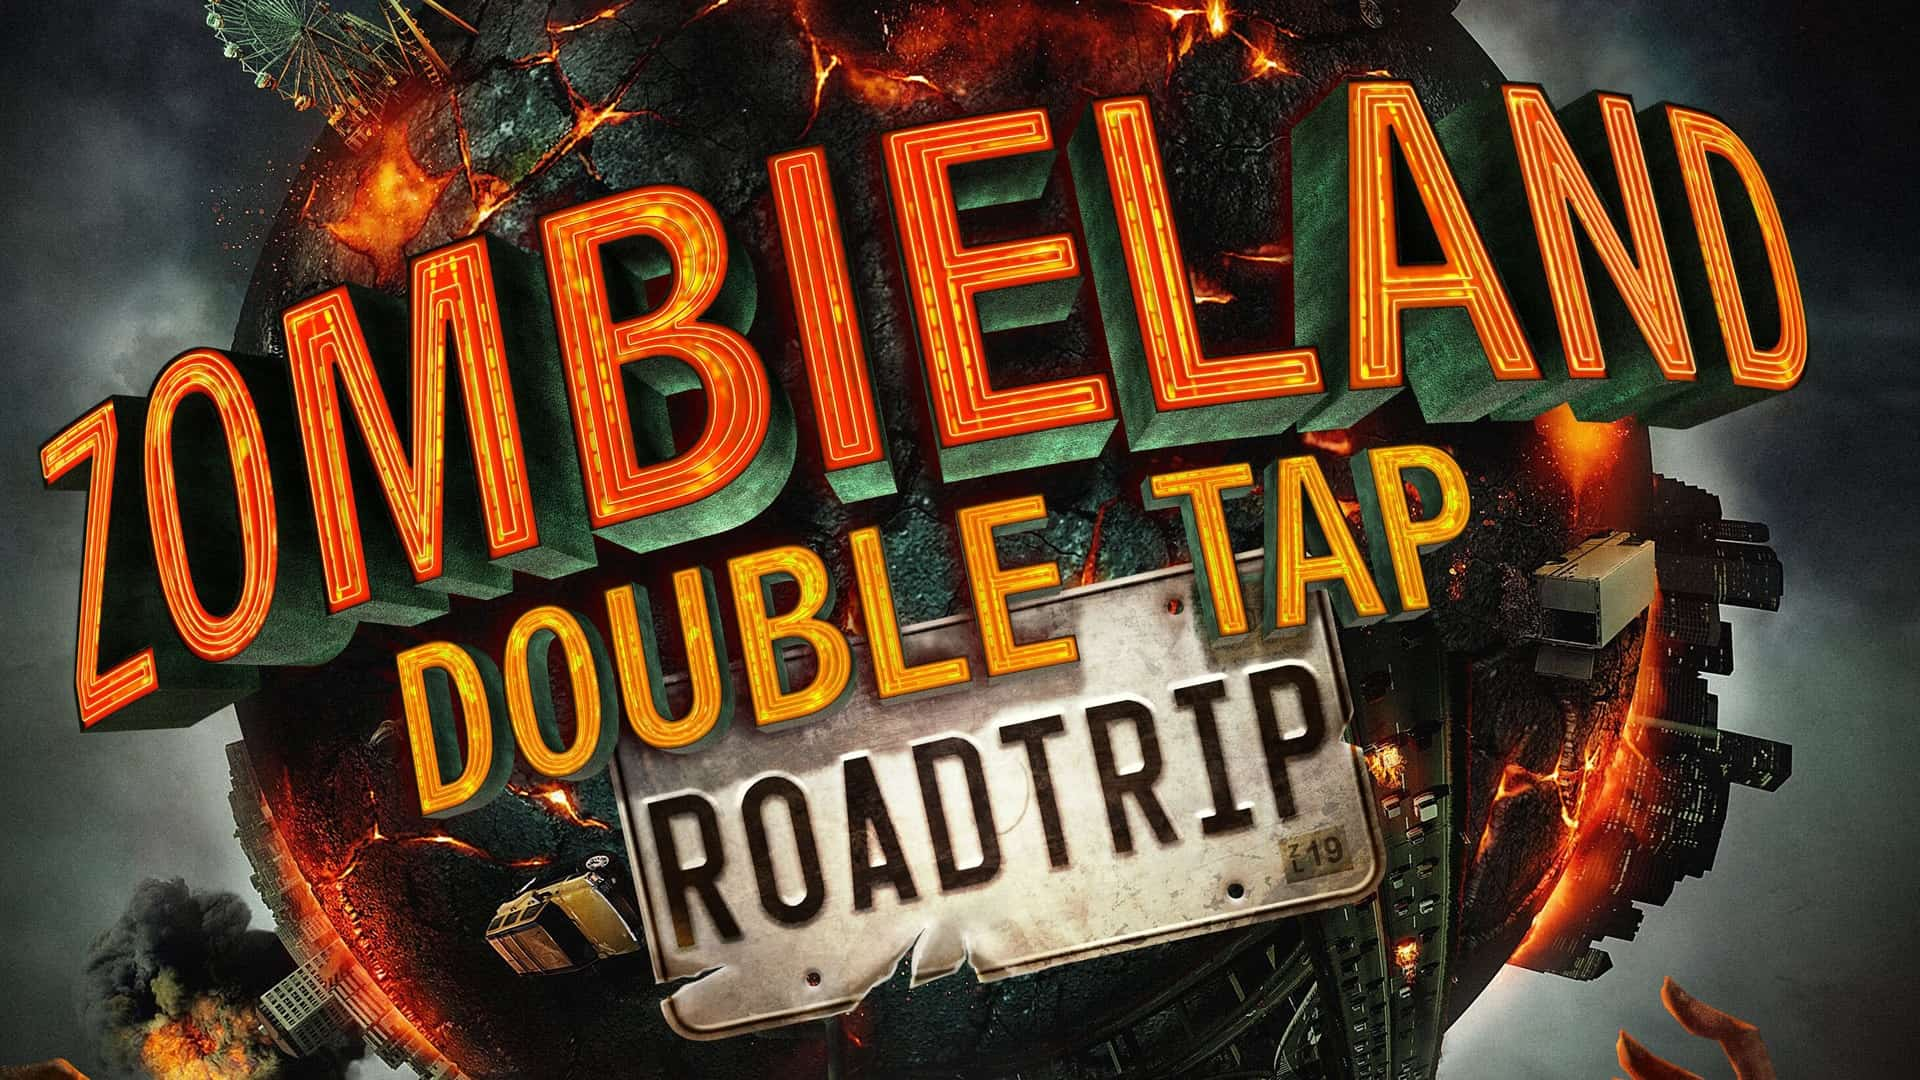 Zombieland: Double Tap – Road Trip Coming To Gaming Consoles & PC On Oct 15th 2019